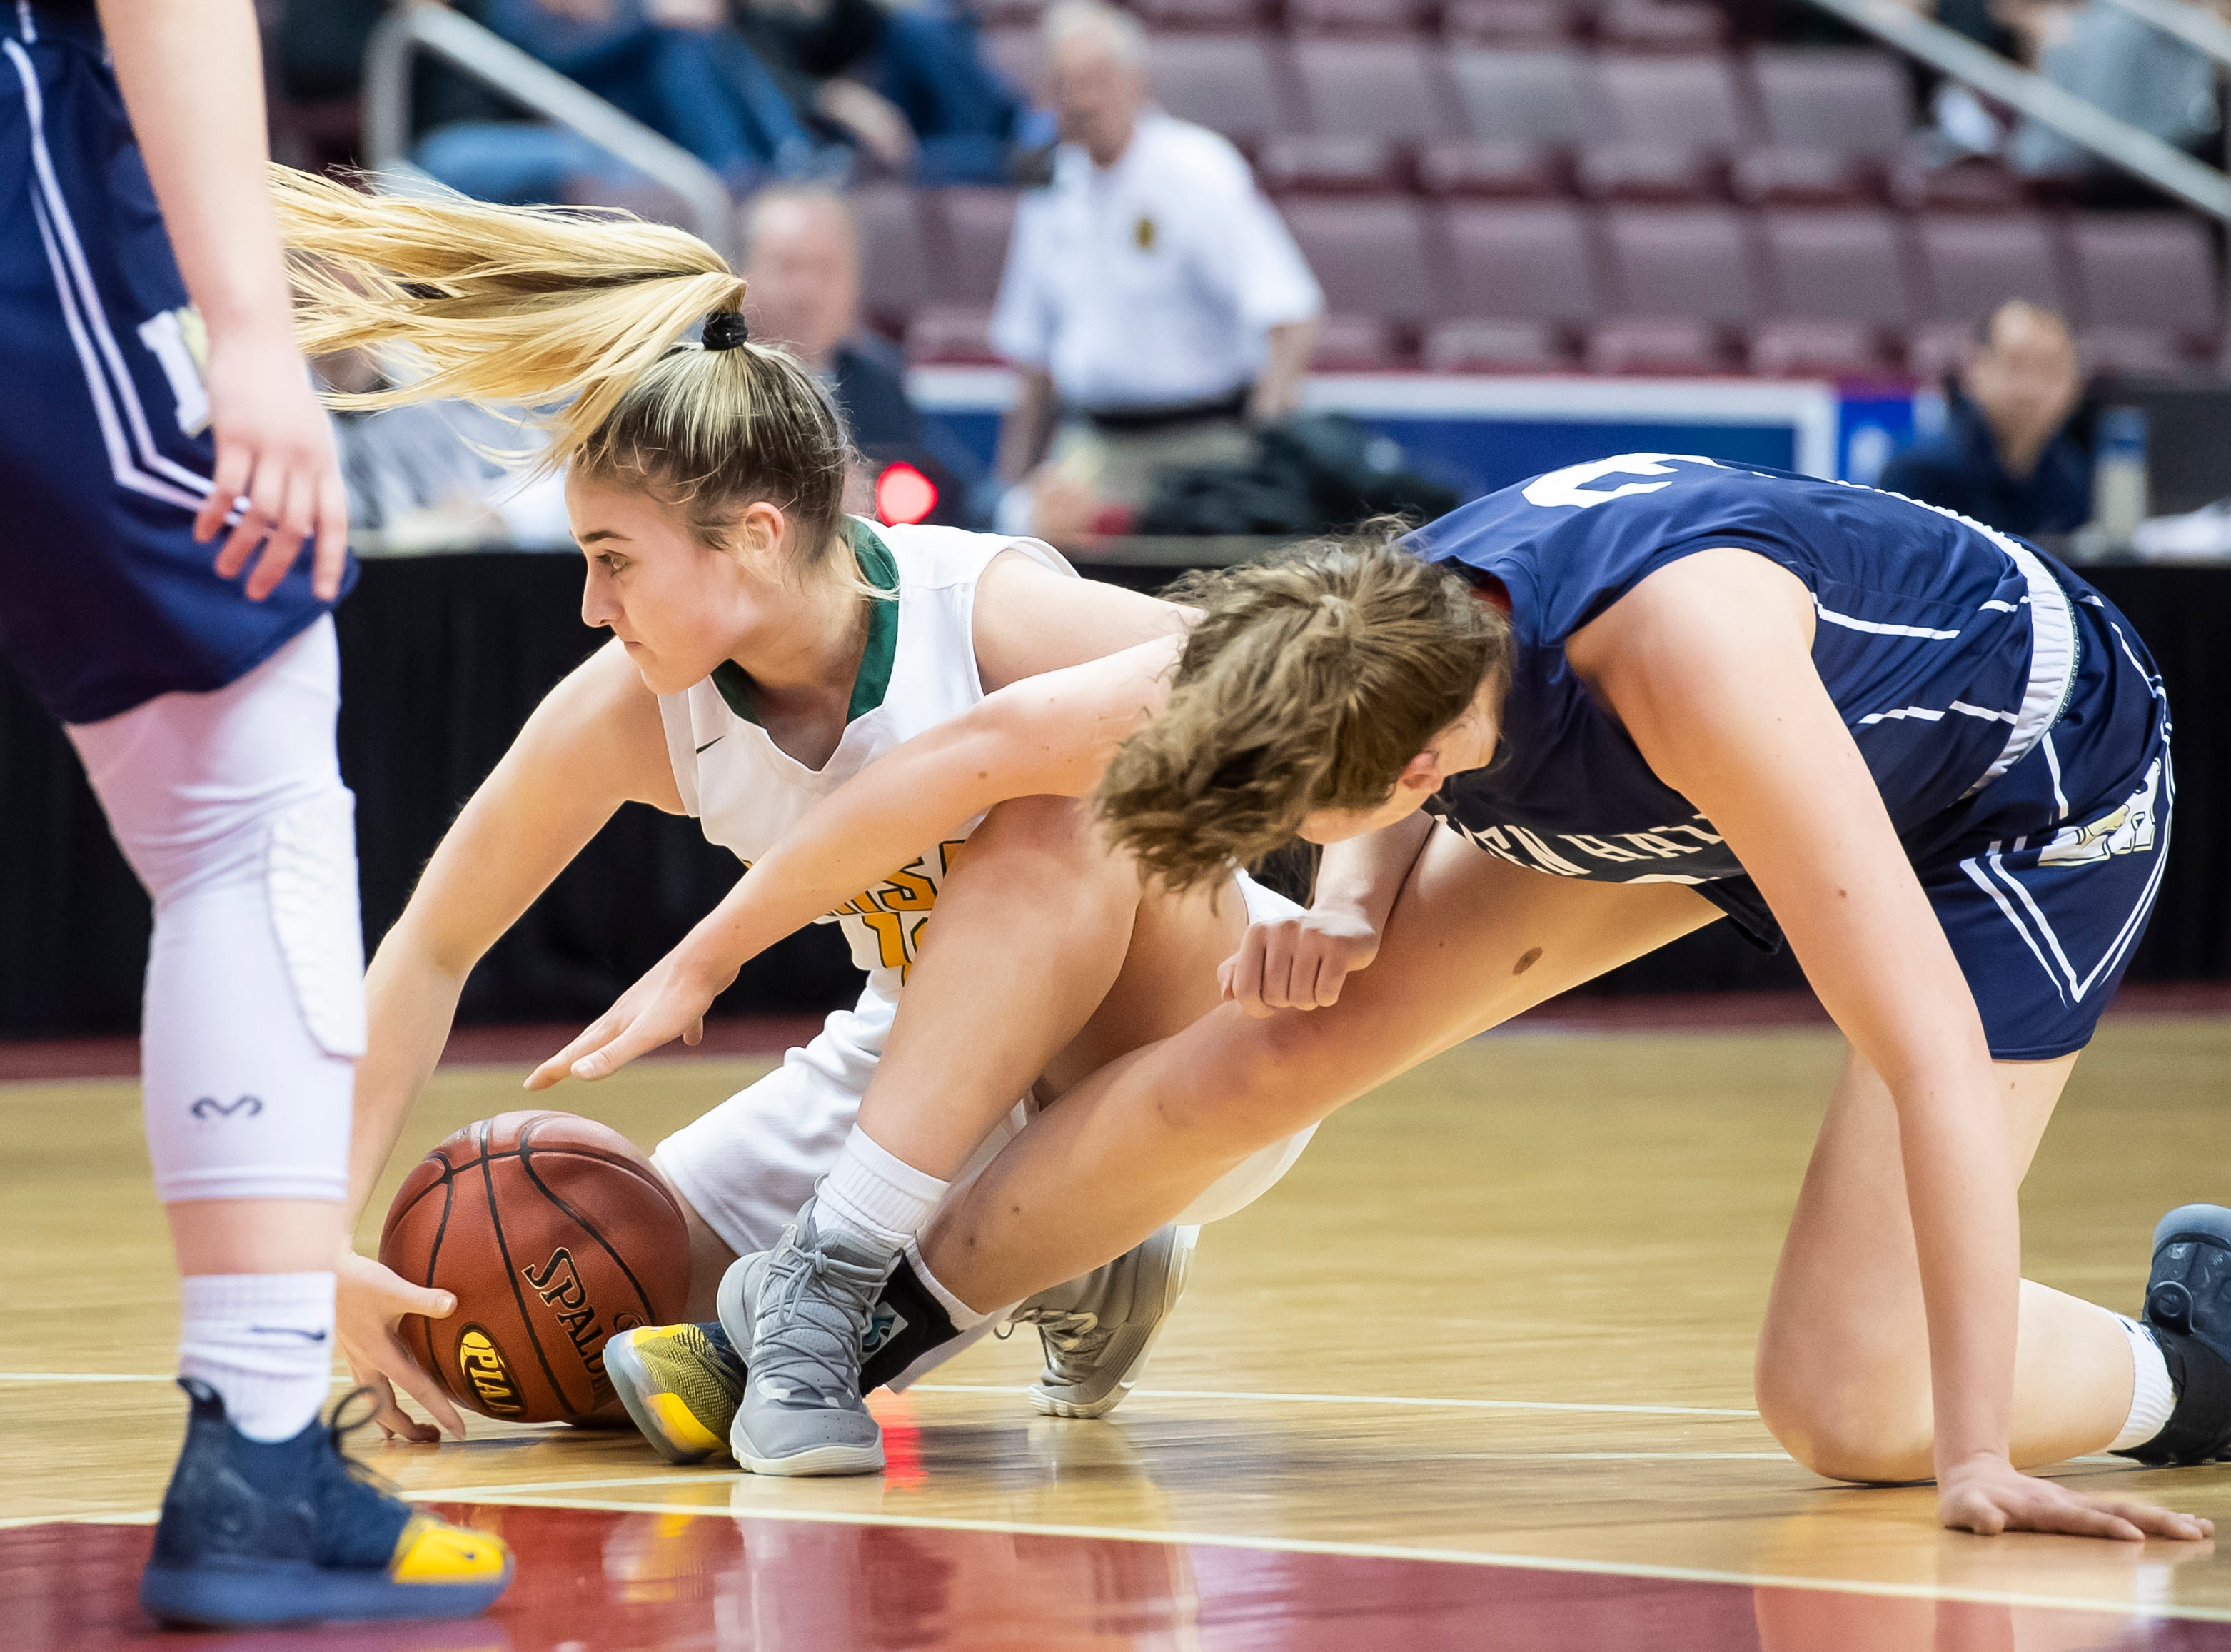 York Catholic's Samantha Bulik holds onto a loose ball during the District 3 2-A girls championship game against Linden Hall at the Giant Center in Hershey Tuesday, Feb. 26, 2019. The Fighting Irish fell 56-27.